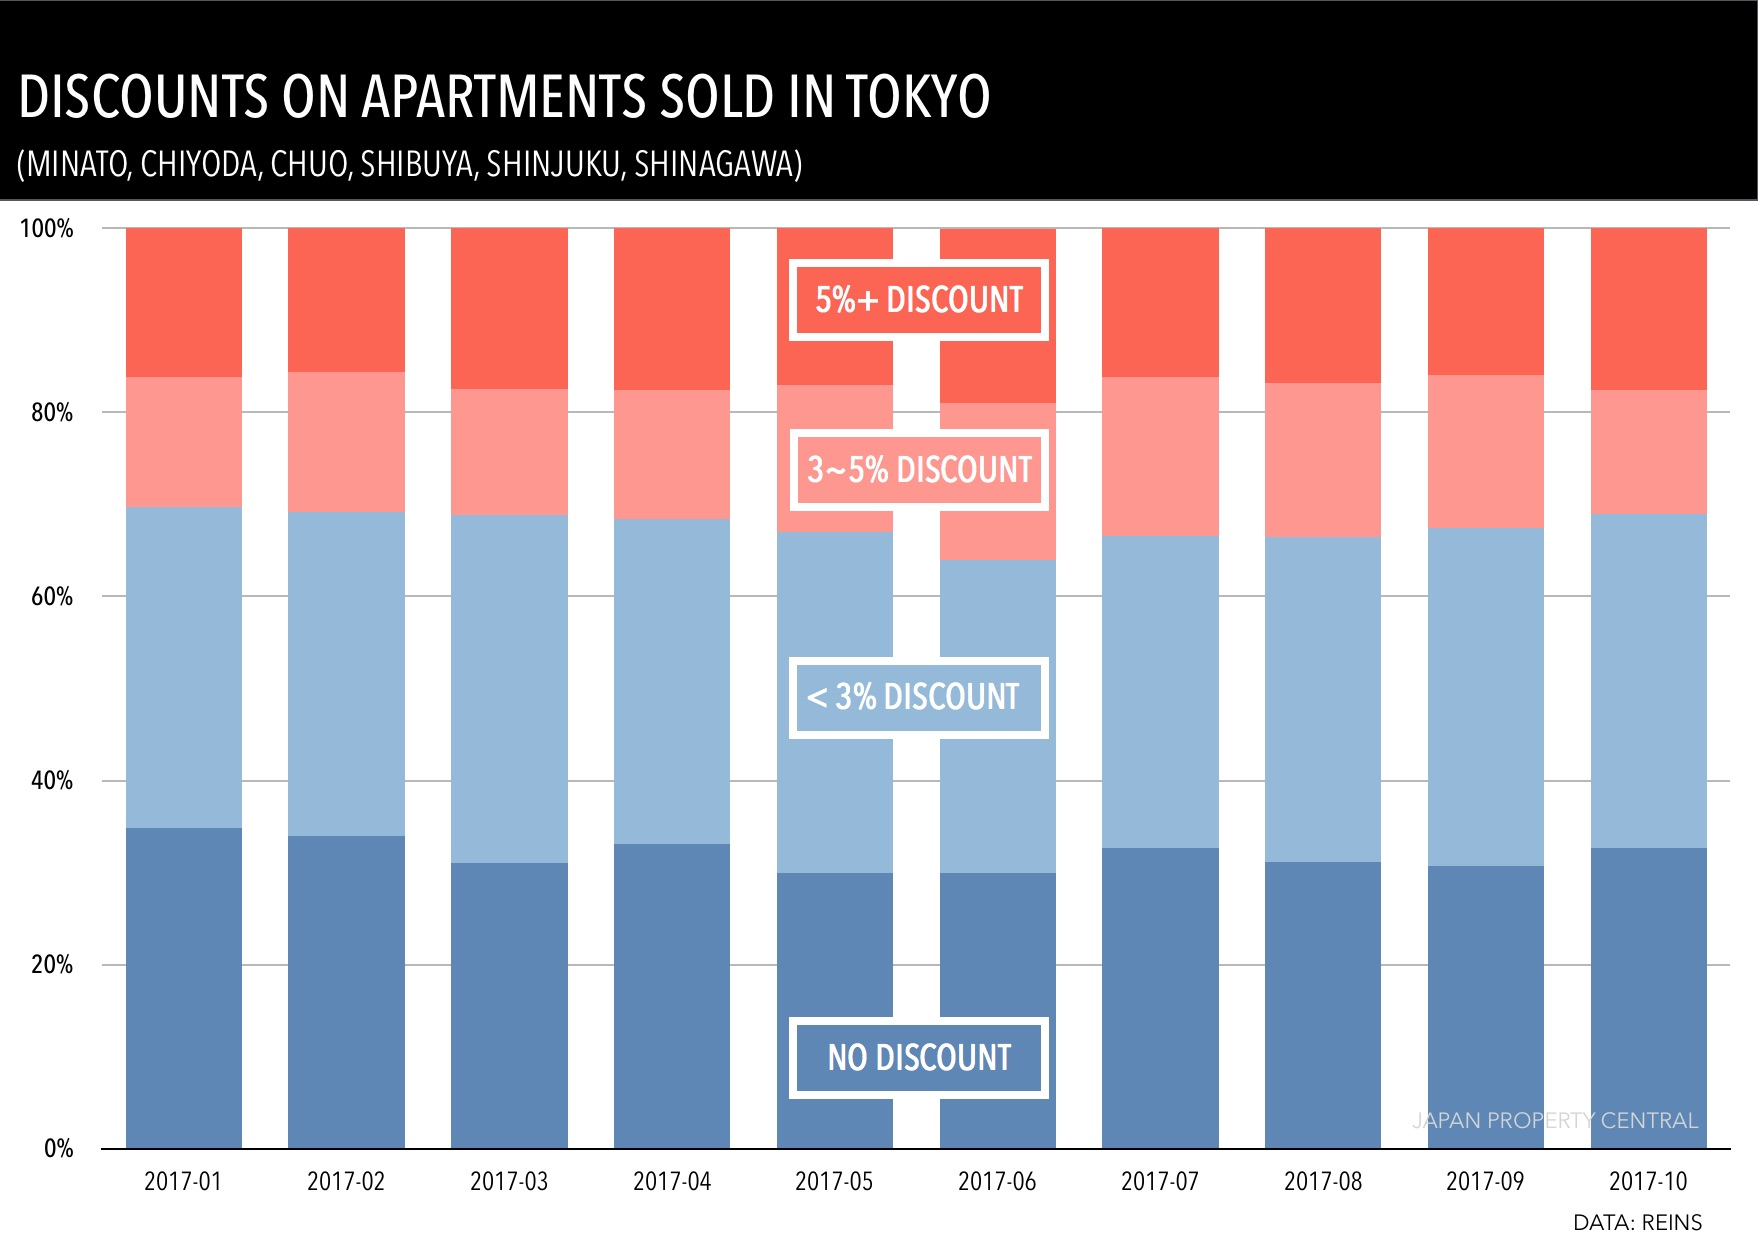 A third of apartments in central Tokyo sell at full asking price